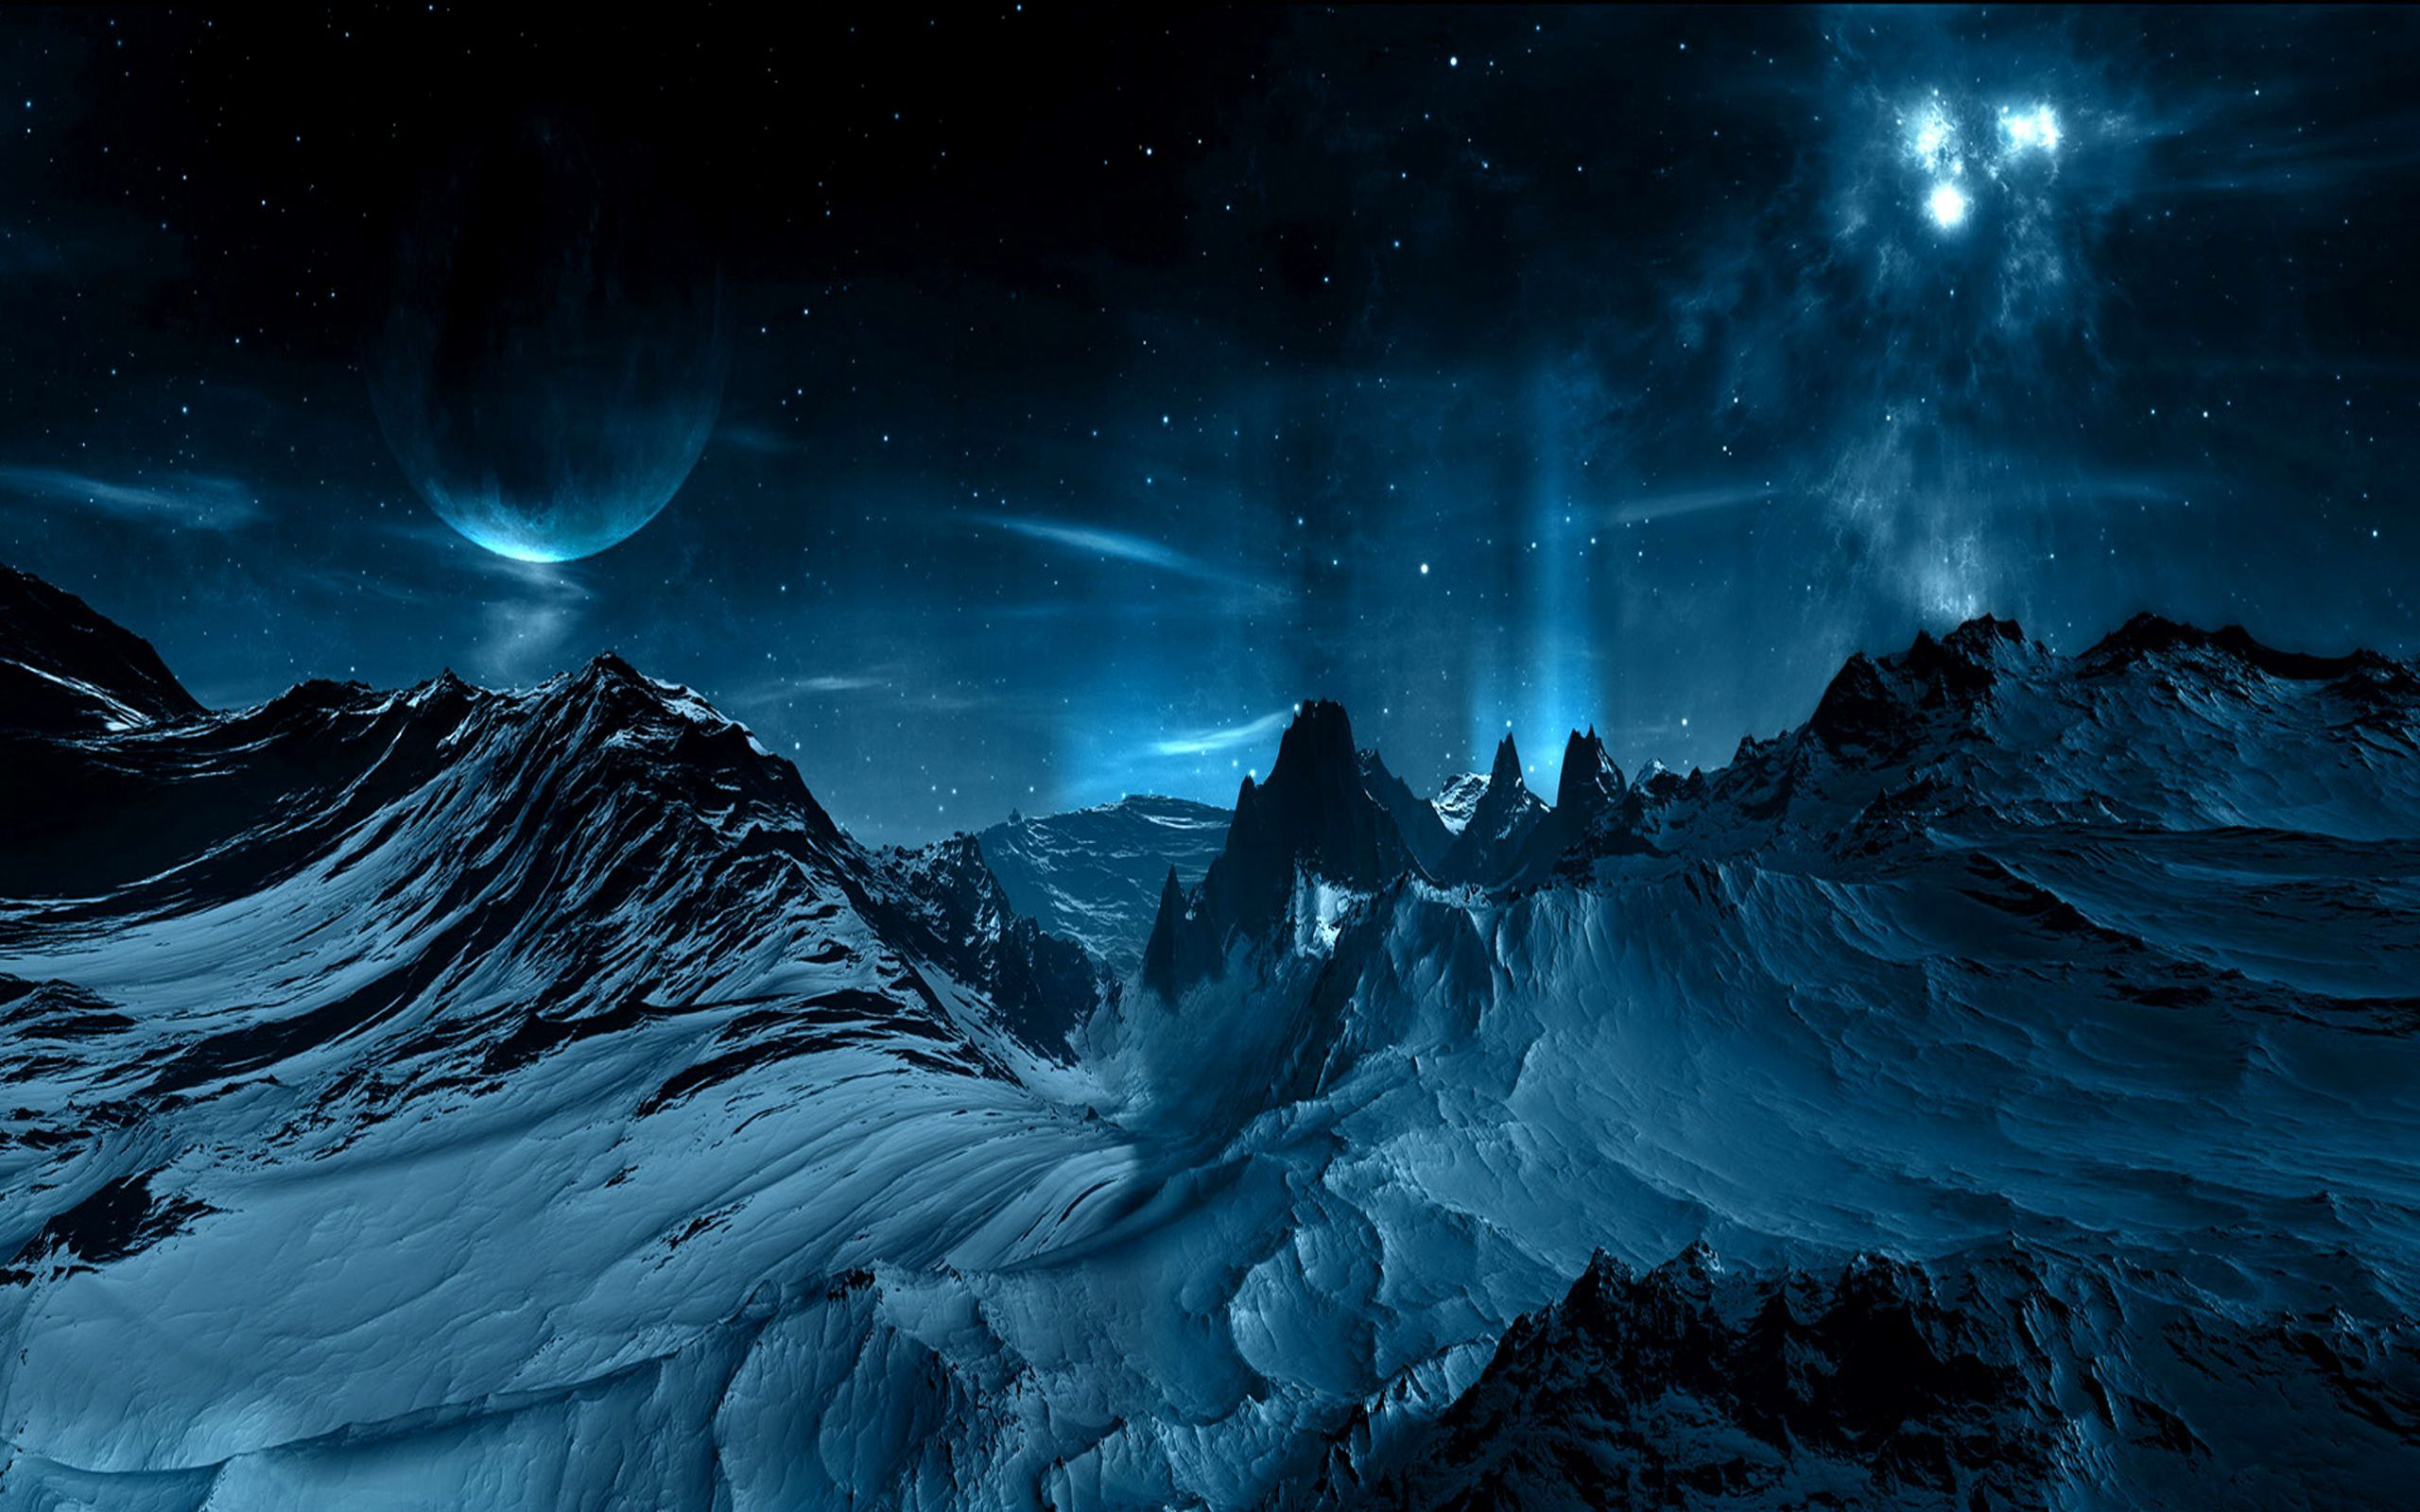 Blue Sci Fi Wallpapers Top Free Blue Sci Fi Backgrounds